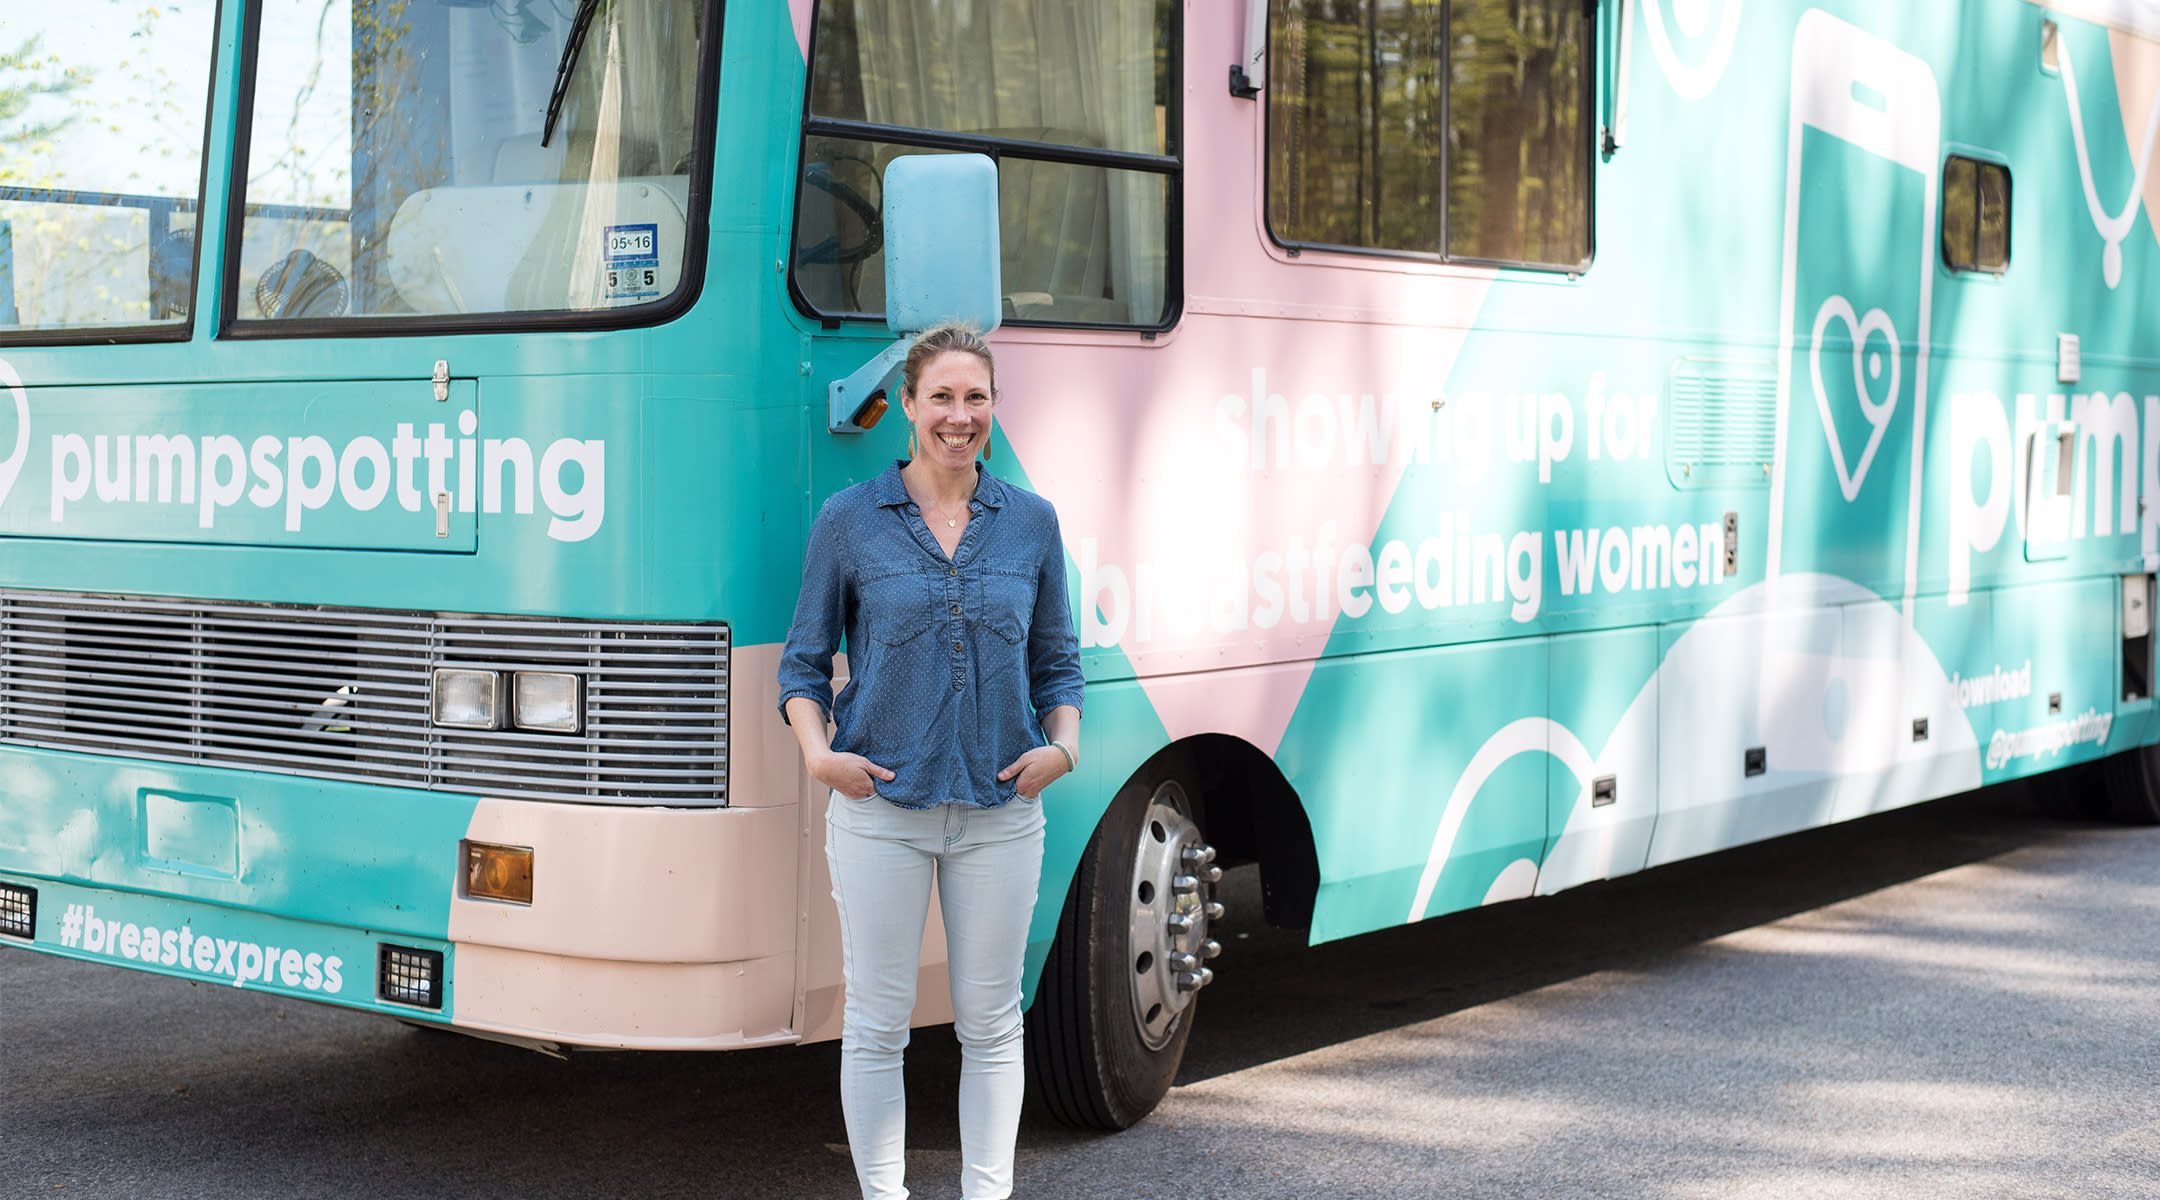 Amy VanHaren in front of a breastfeeding-themed RV